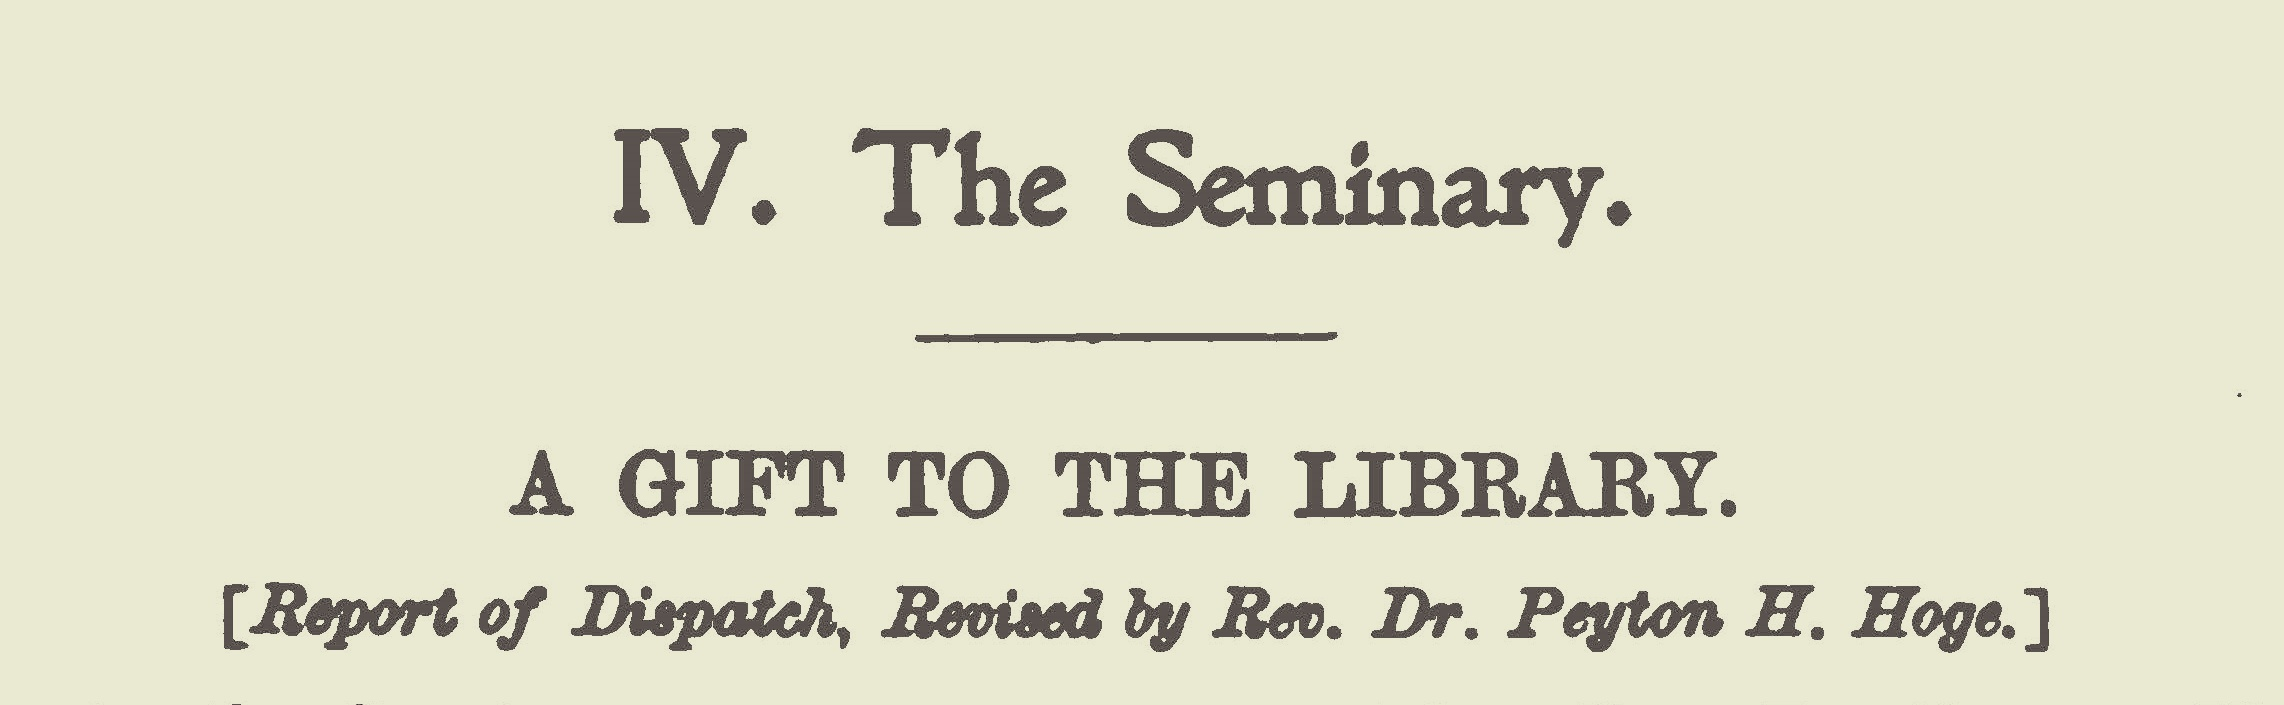 Hoge, Peyton Harrison, A Gift to the Library Title Page.jpg